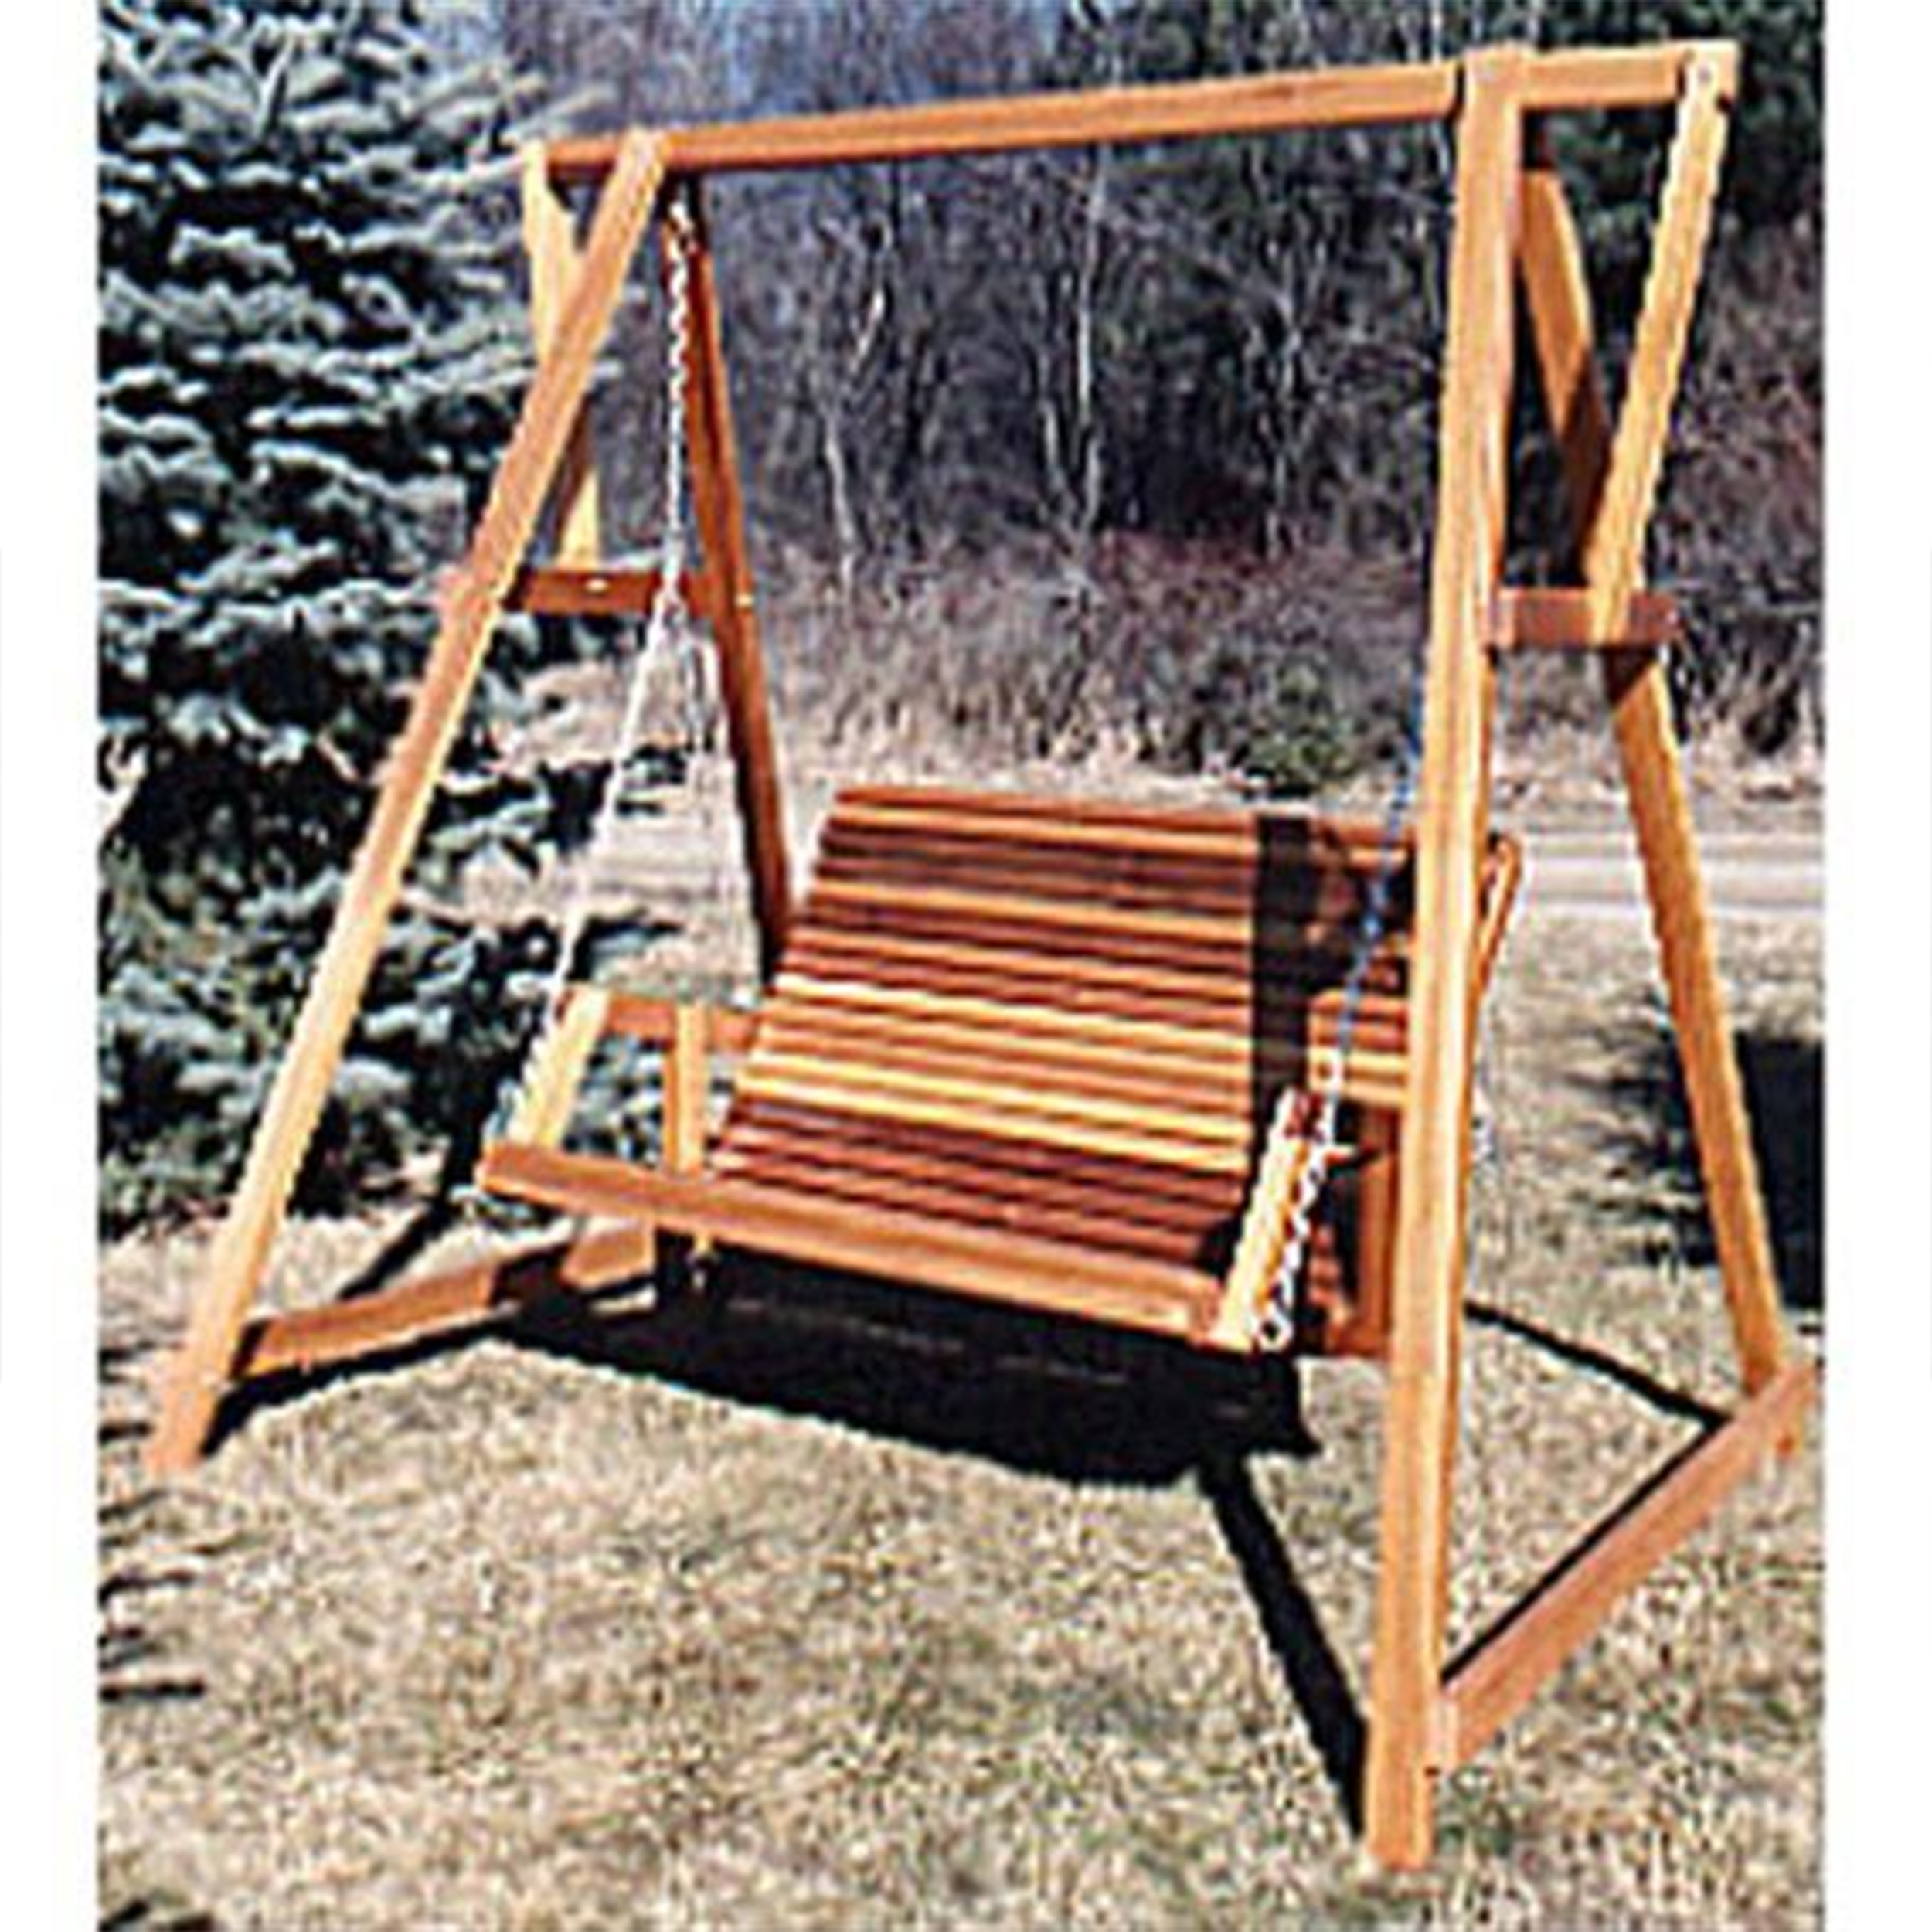 Woodworking Project Paper Plan to Build Patio Swing and Stand